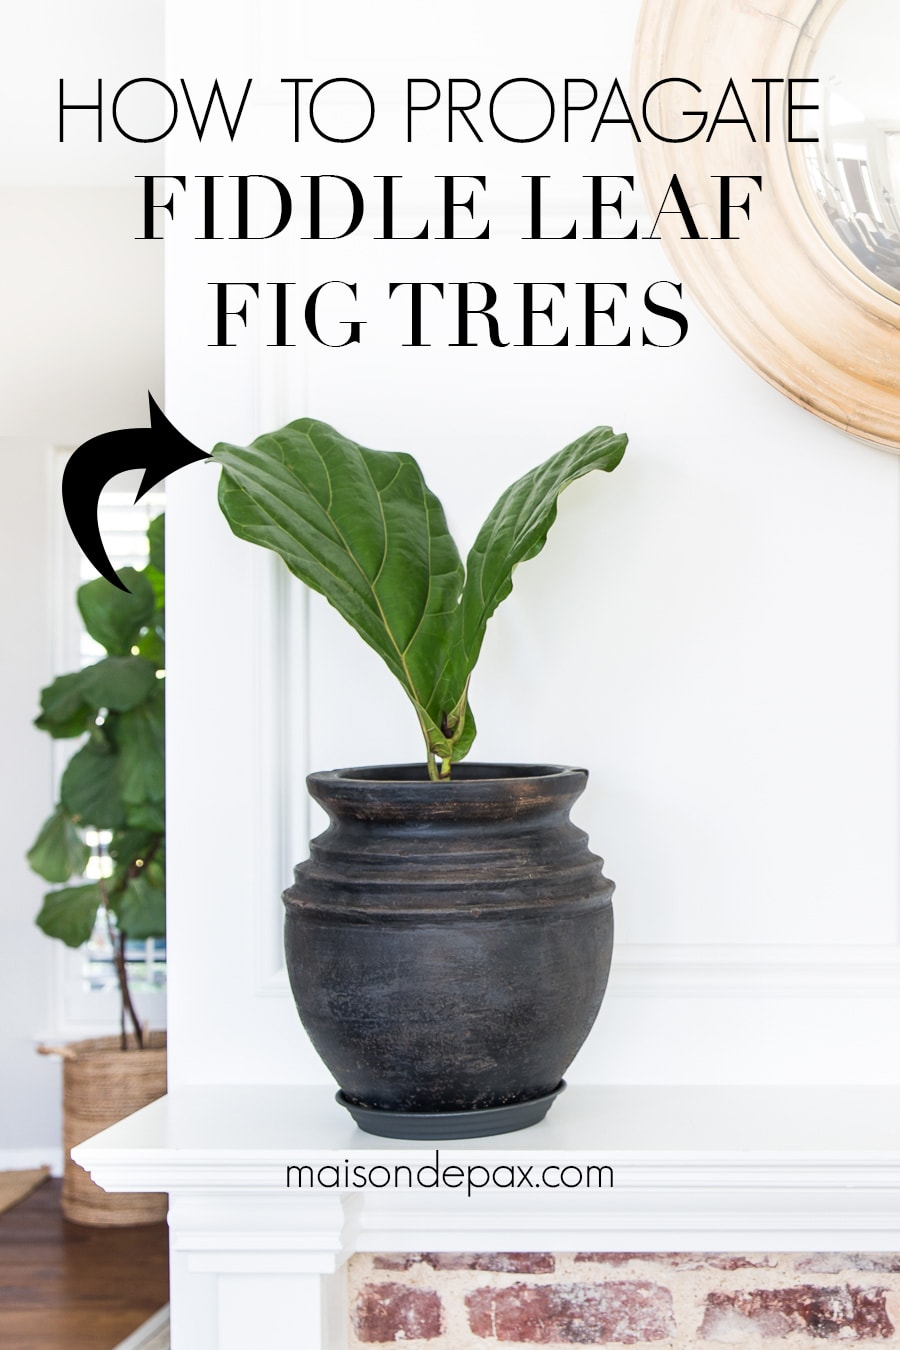 how to propagate fiddle leaf fig trees